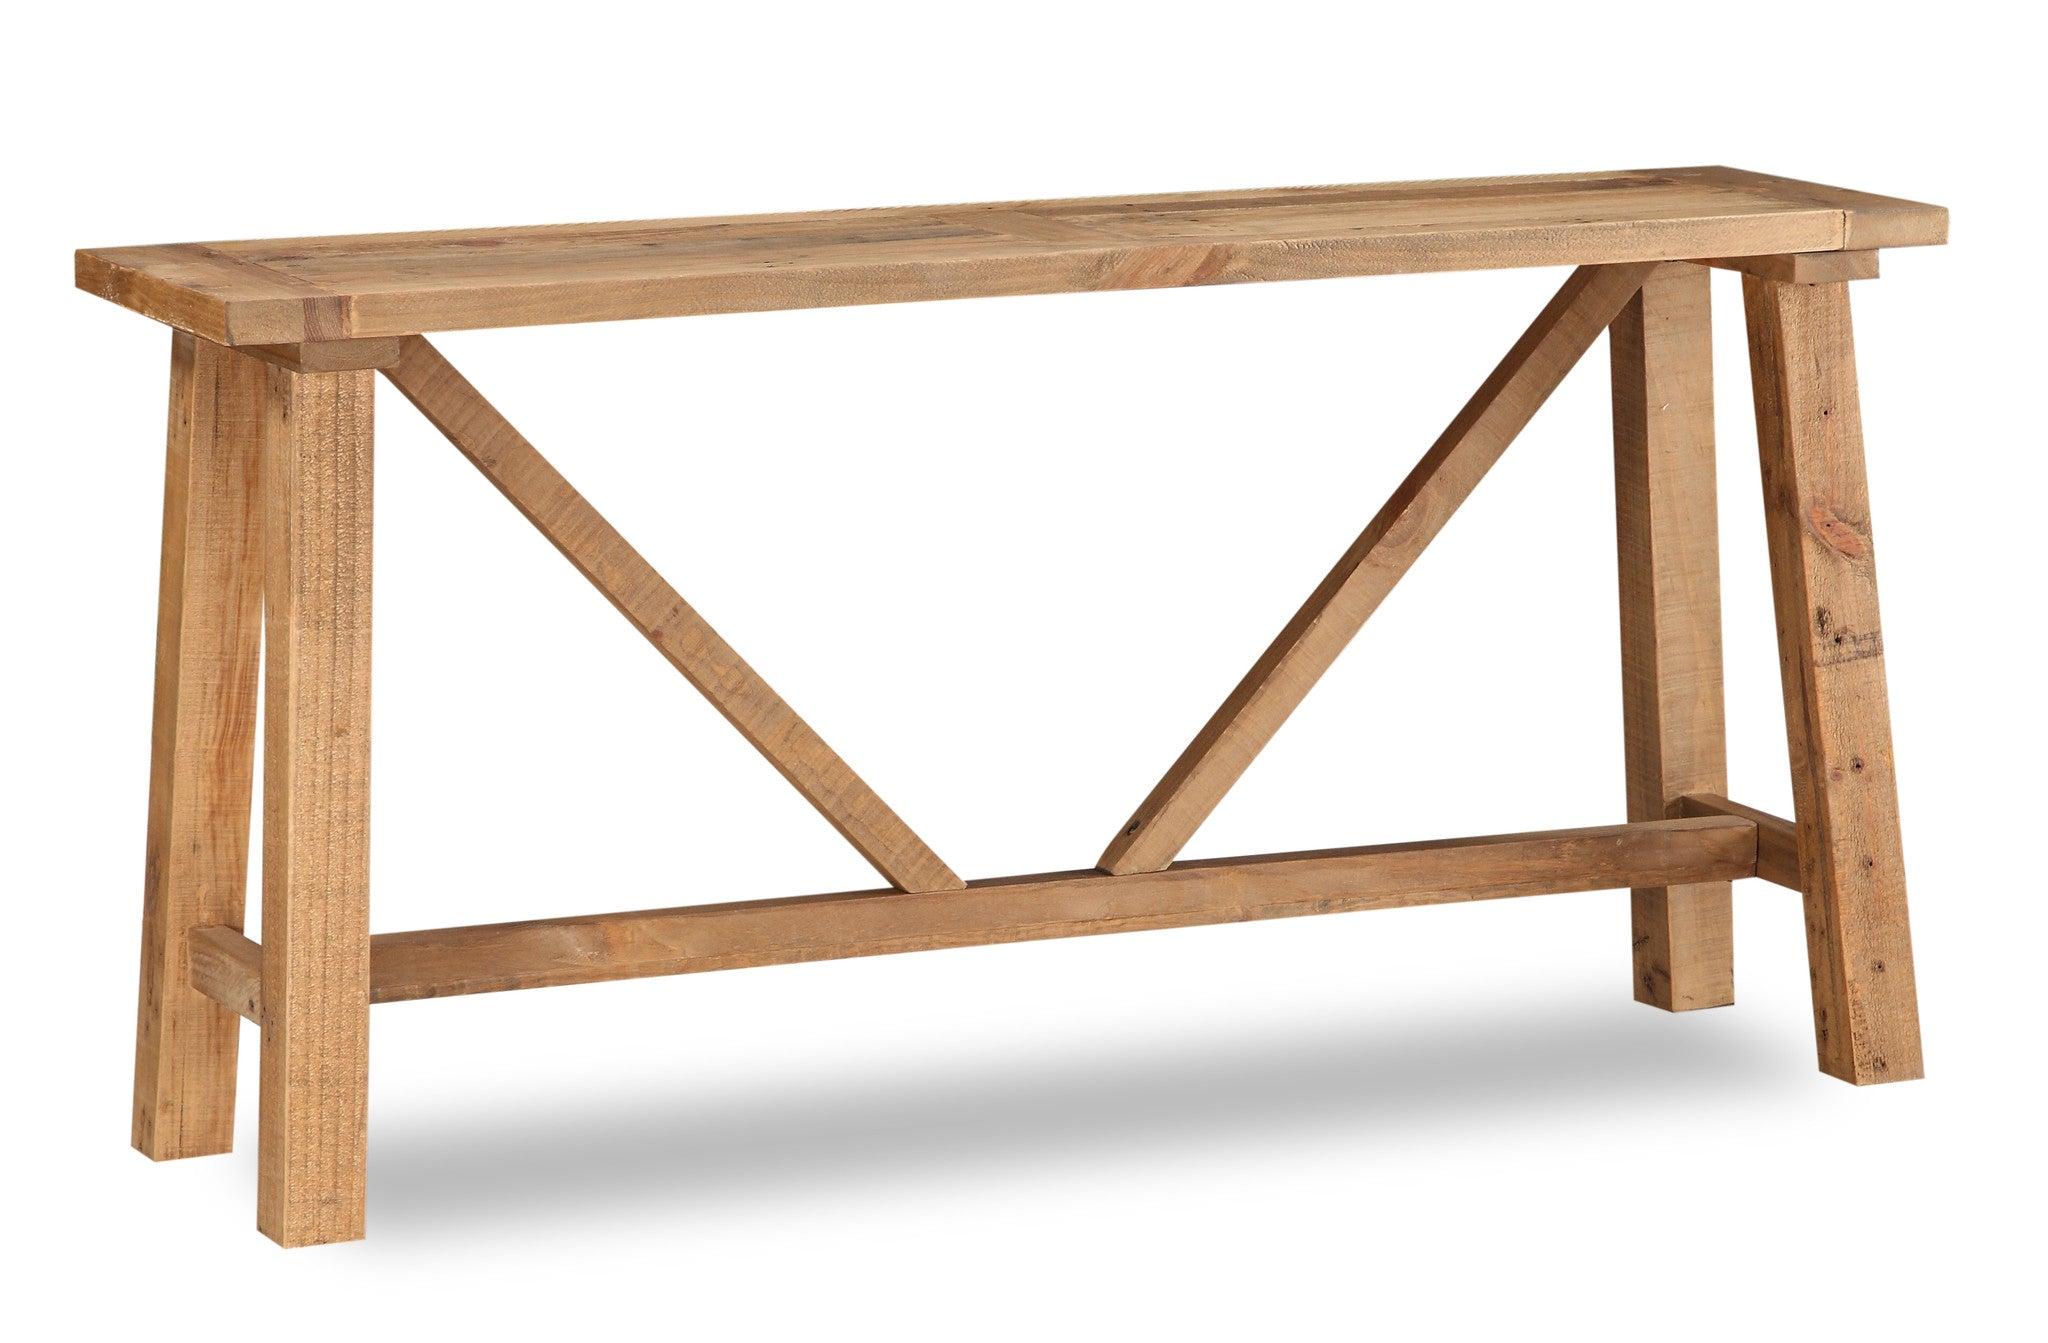 Chesapeake Console Table $448